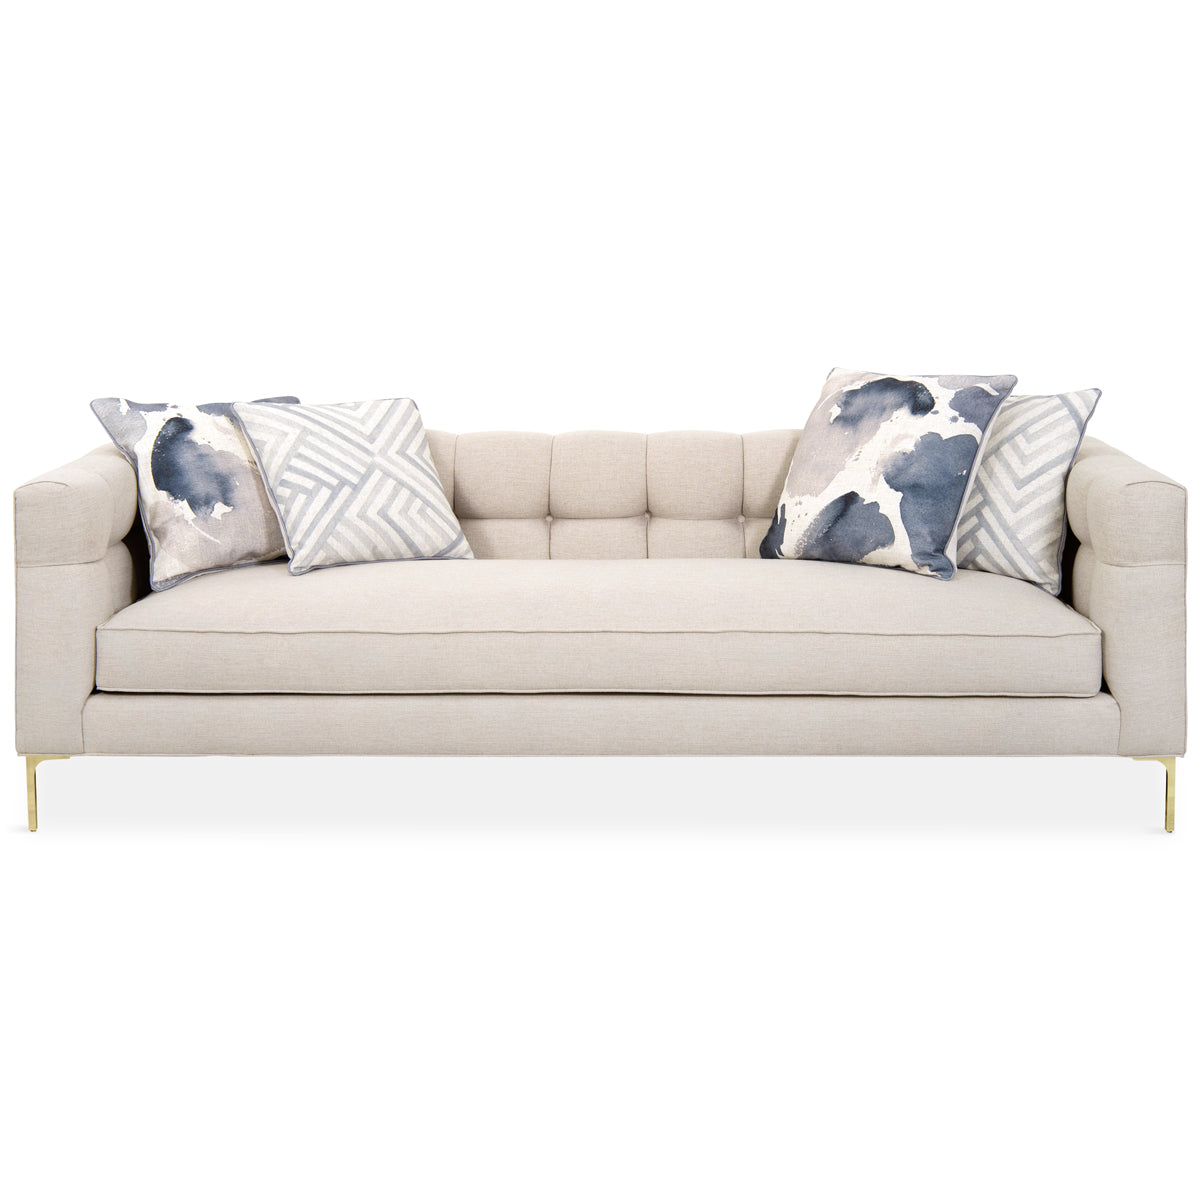 Delano Sofa with Loose Seat Cushion - ModShop1.com